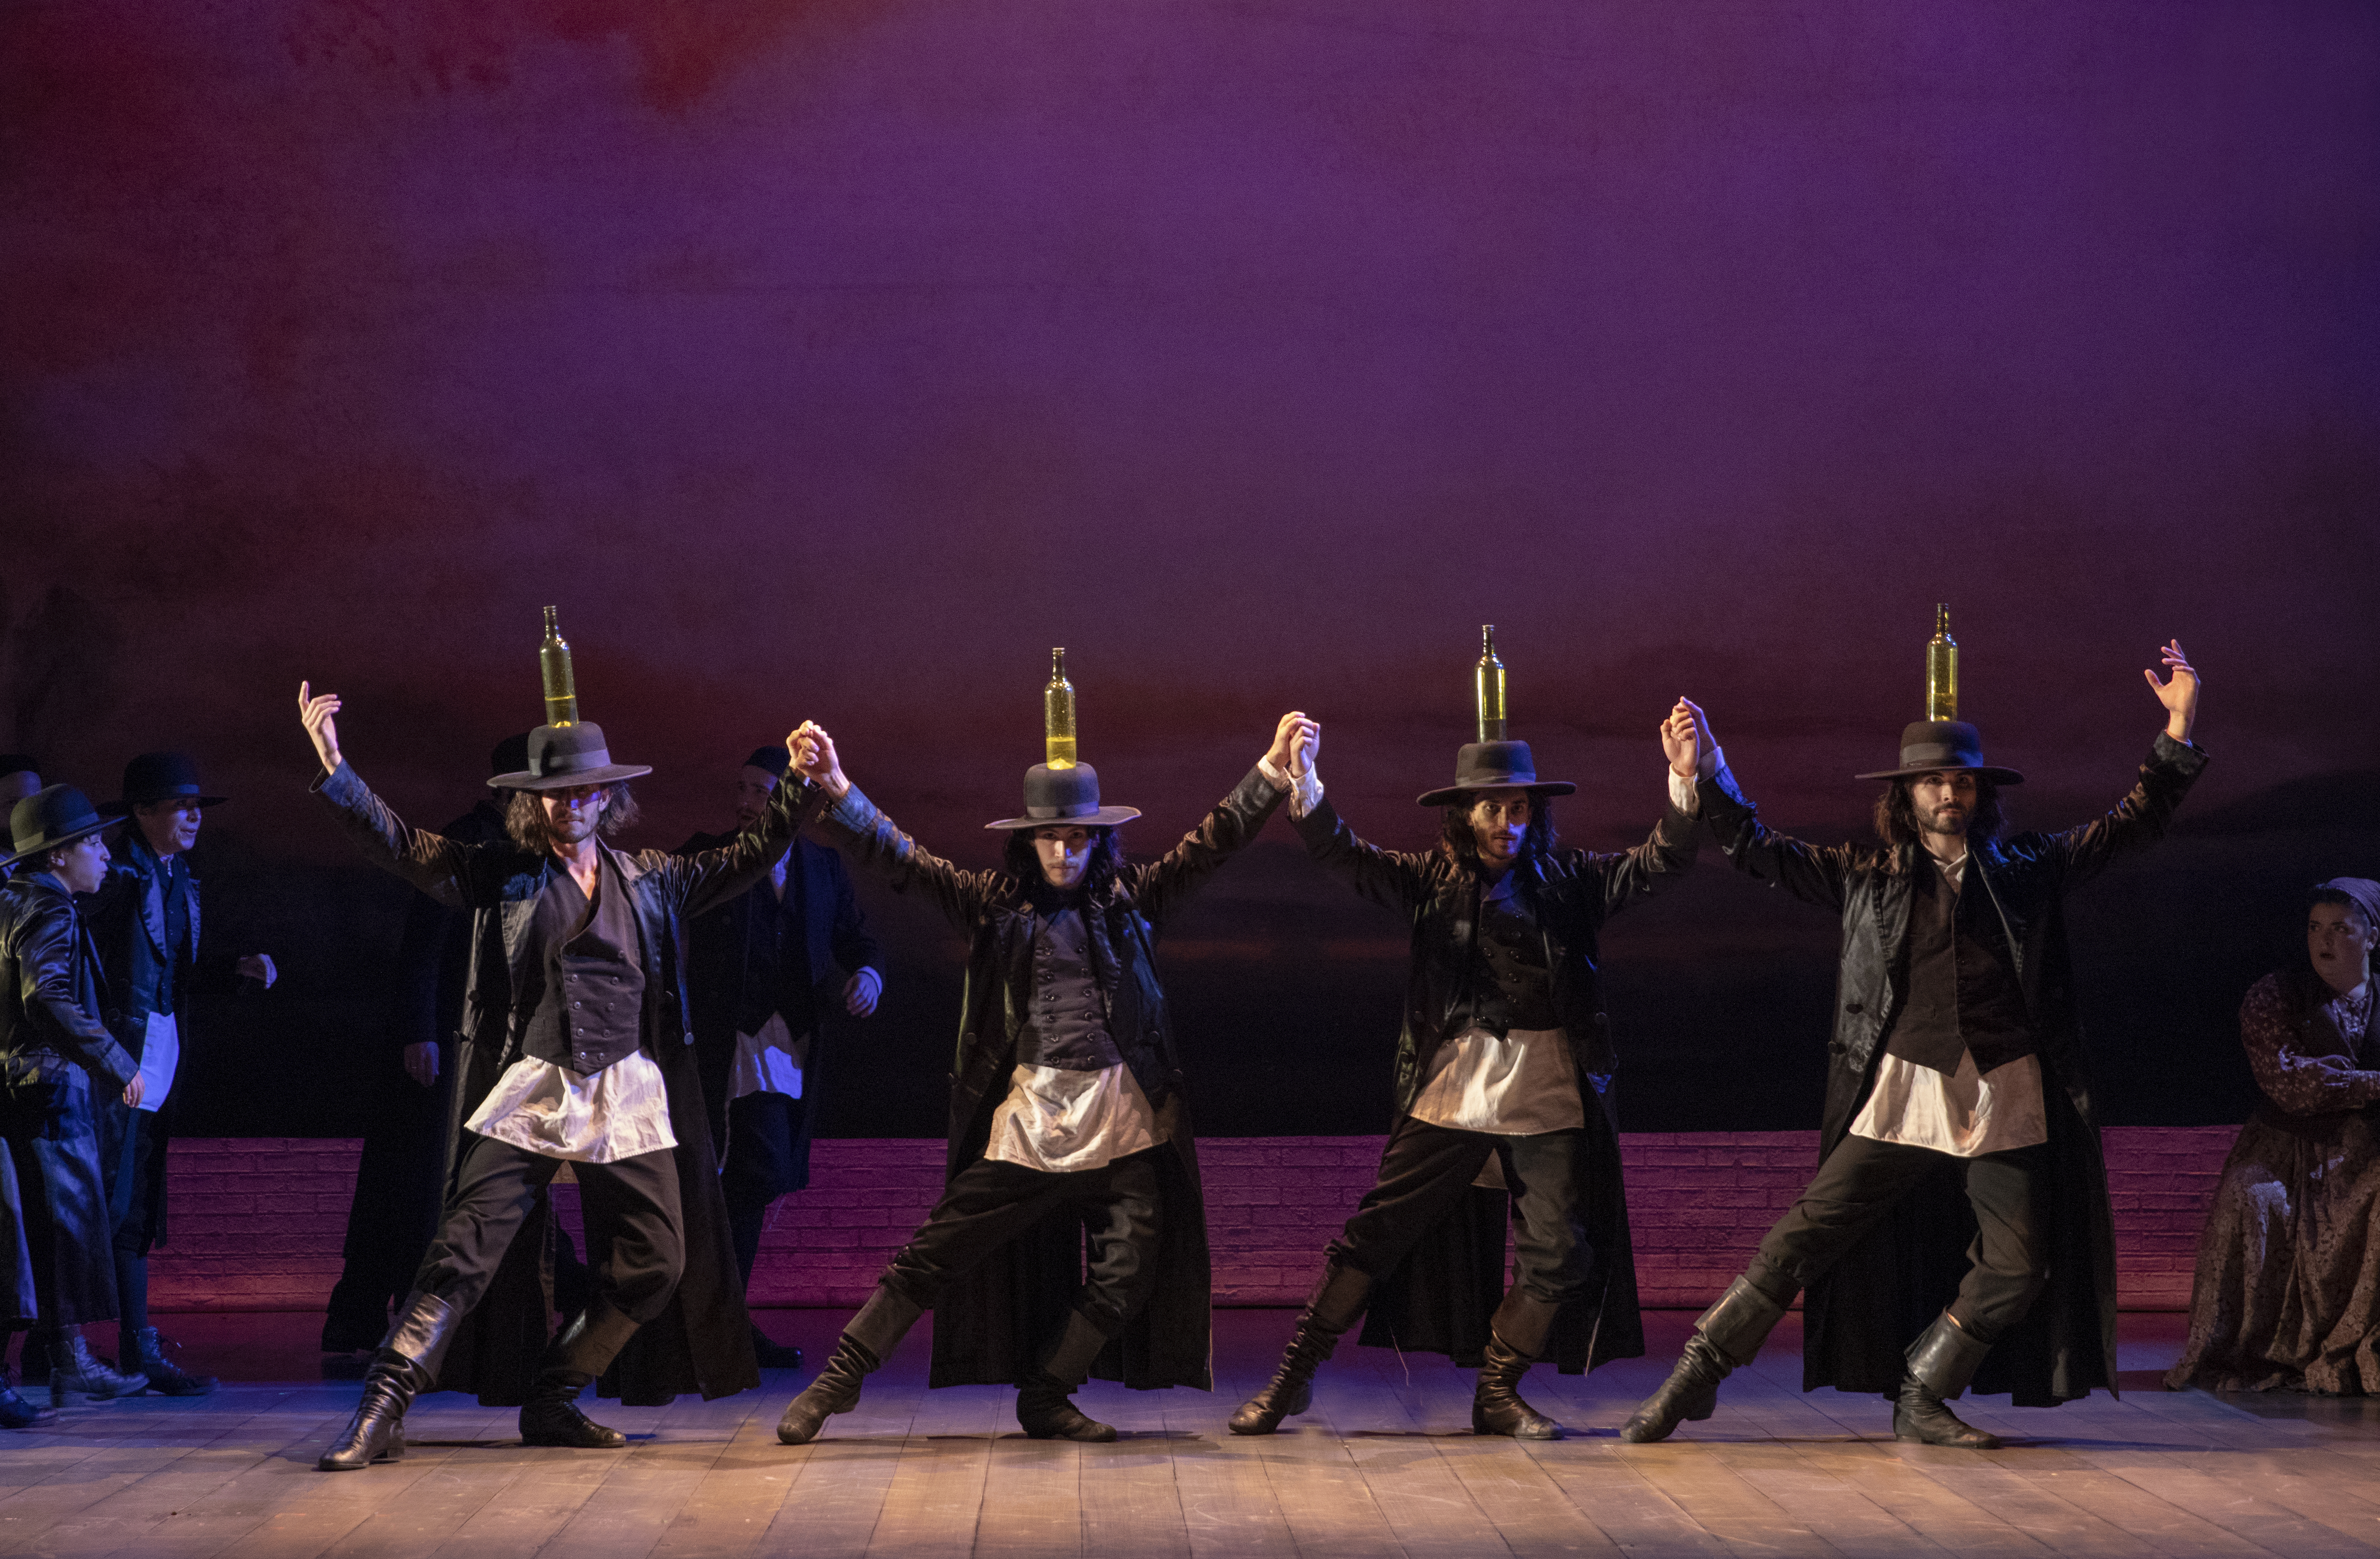 Male dancers hold hands and balance bottles on the